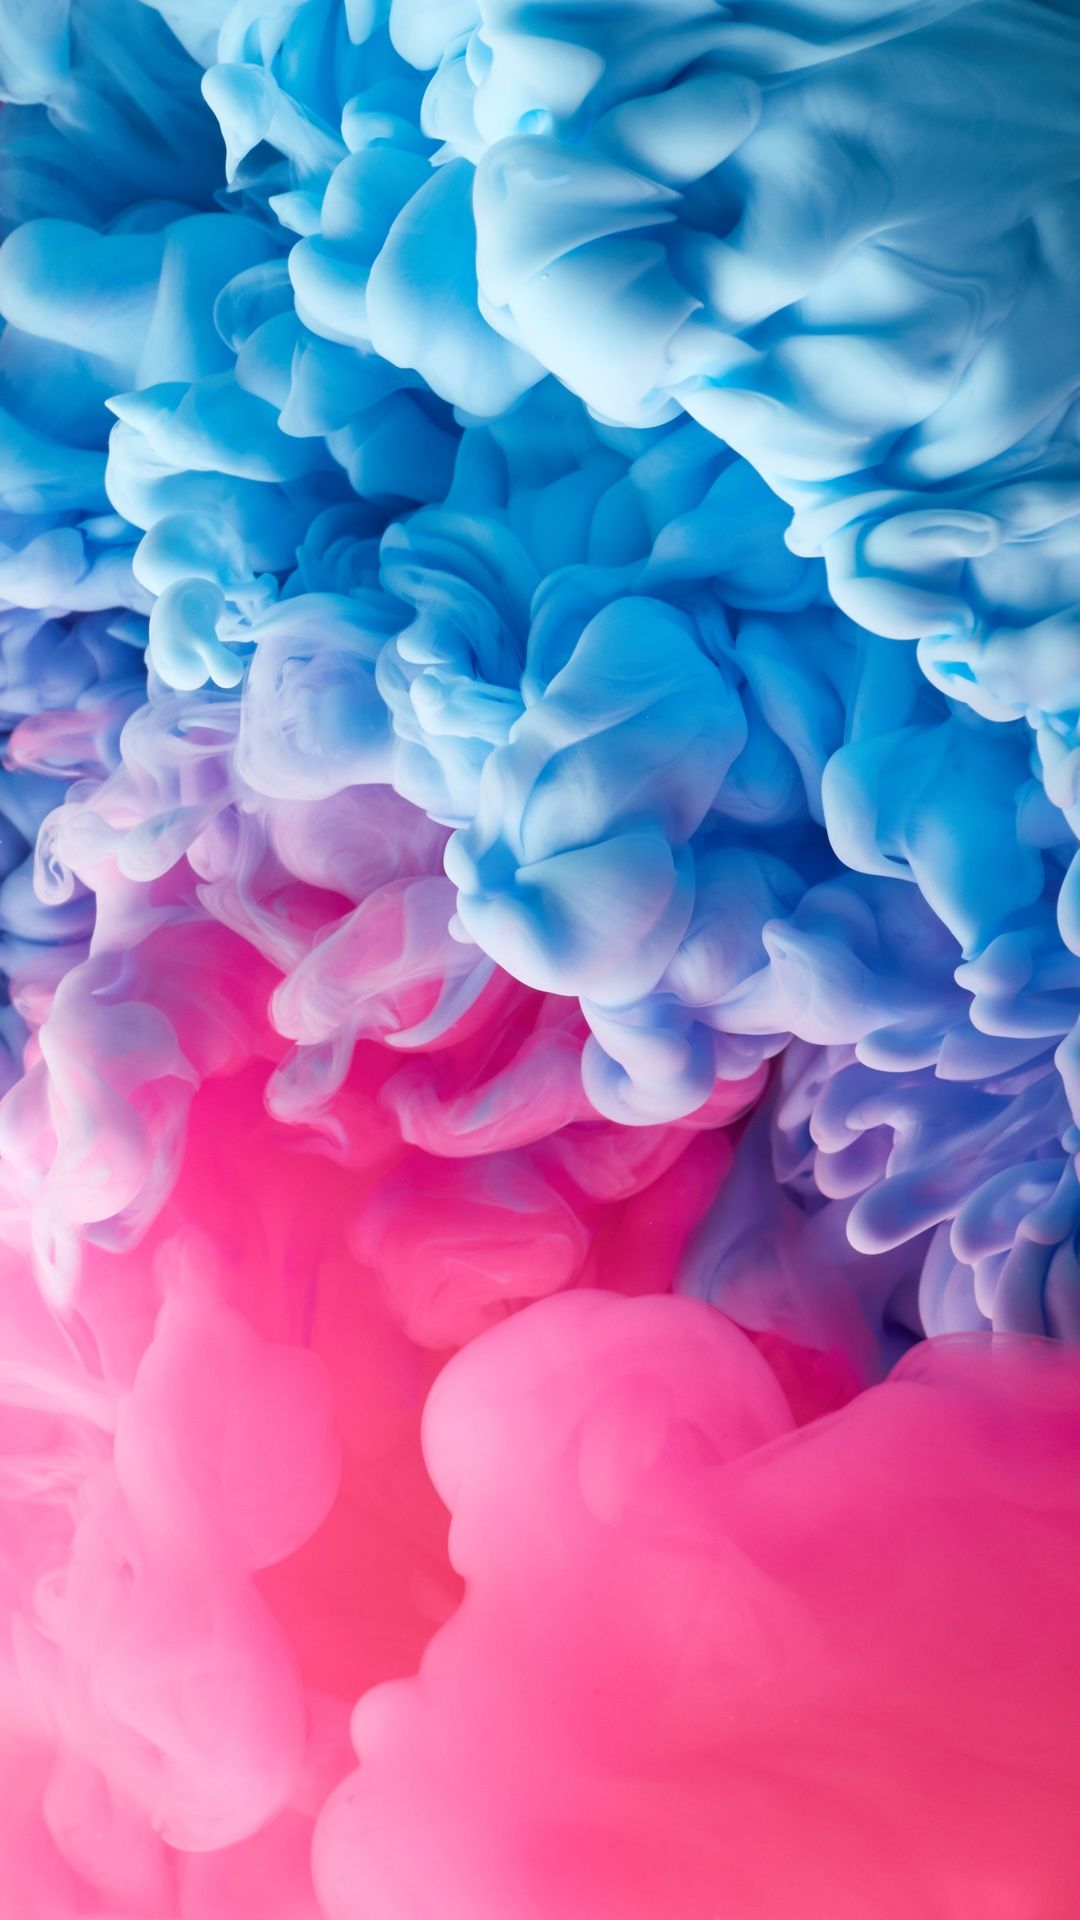 Abstract Wallpaper Colourful Wallpaper Iphone Iphone Wallpaper Smoke Abstract Iphone Wallpaper